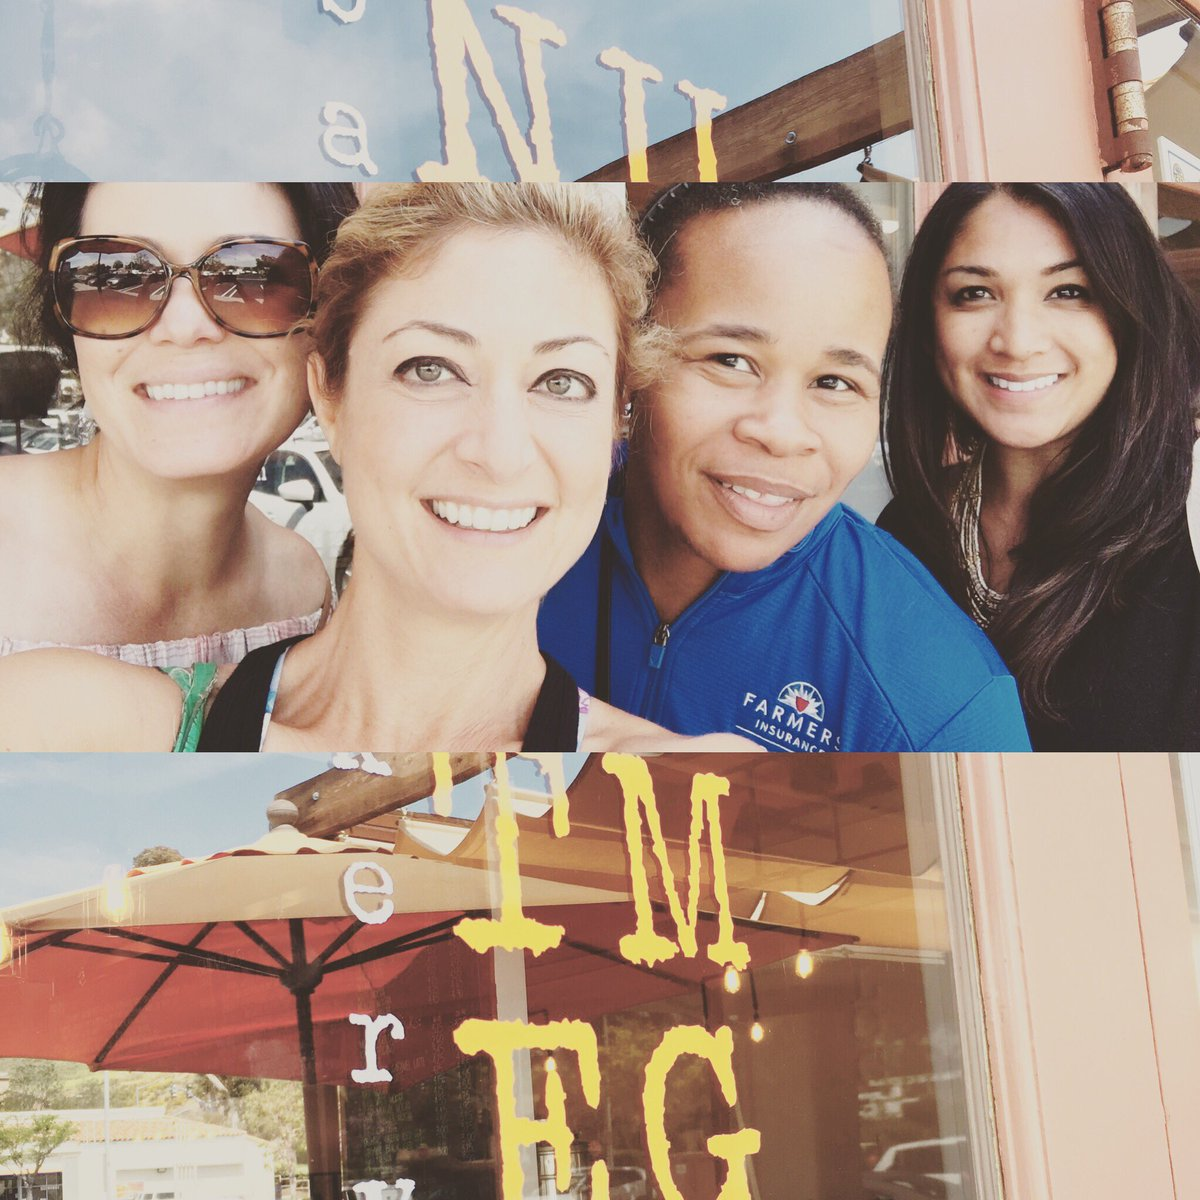 test Twitter Media - Got a chance to indulge at #nutmegbakery with these fab friends today! @loolindsayhoo @susanafrancocw6 @jenn_casillan https://t.co/XHGly8cztt